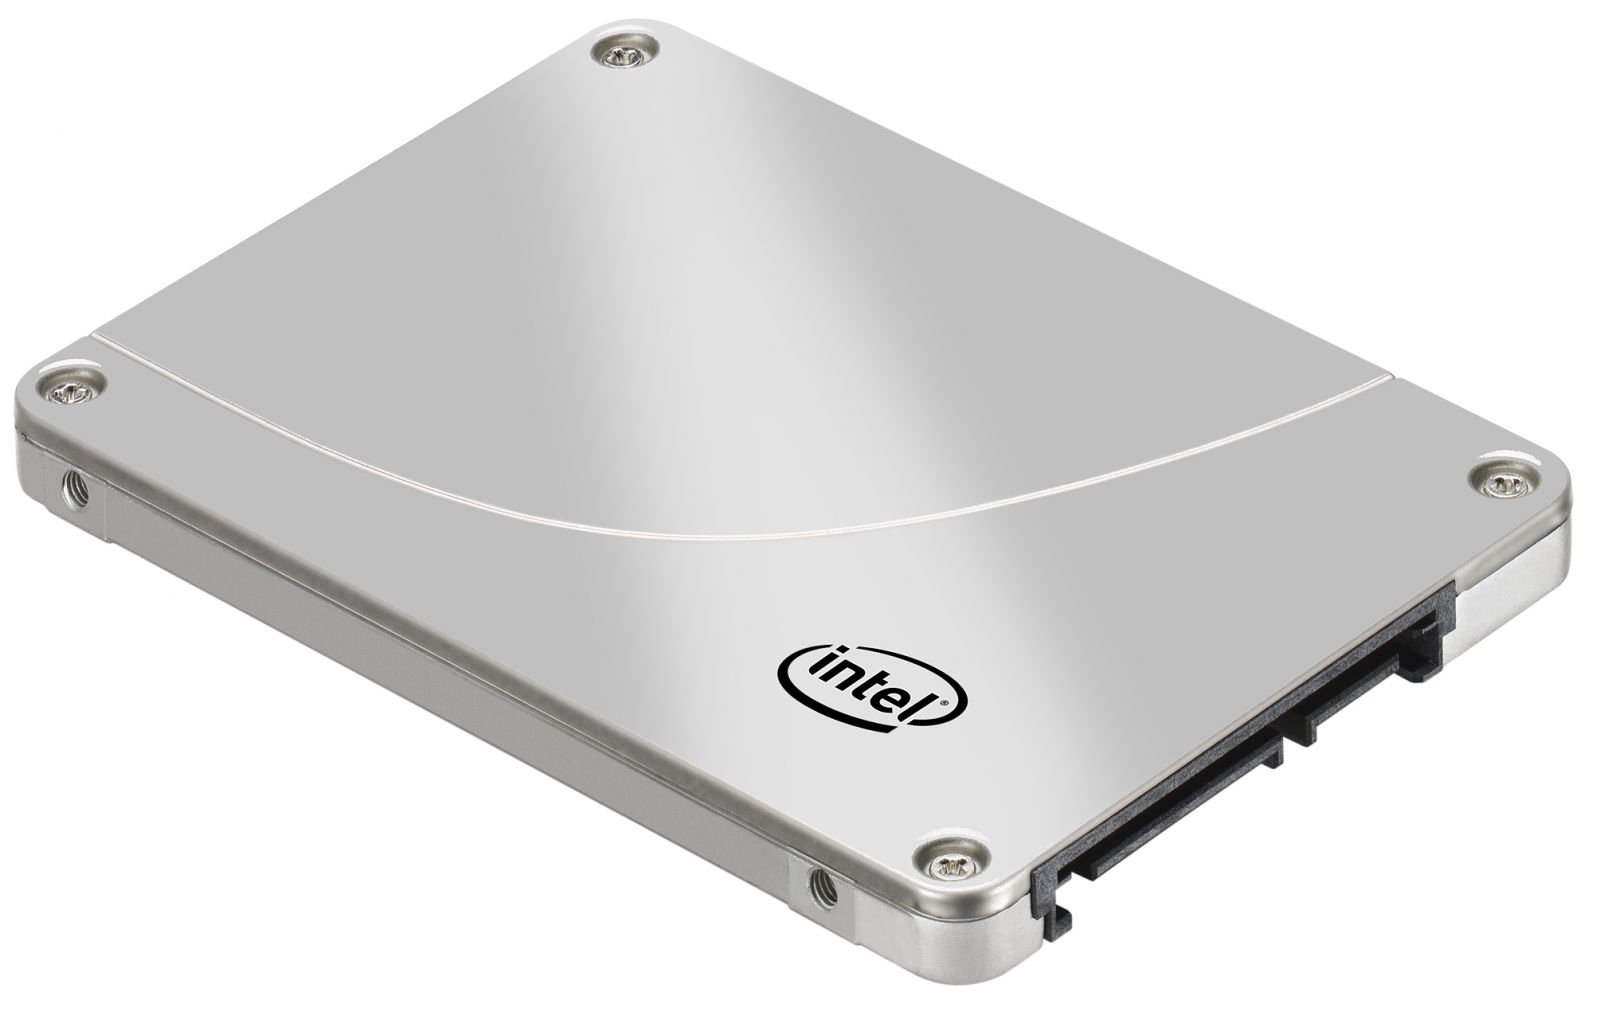 Intel 520 Series Solid-State Drive 240 GB SATA 6 Gb/s 2.5-Inch - SSDSC2CW240A3K5 (Reseller Kit) by Intel